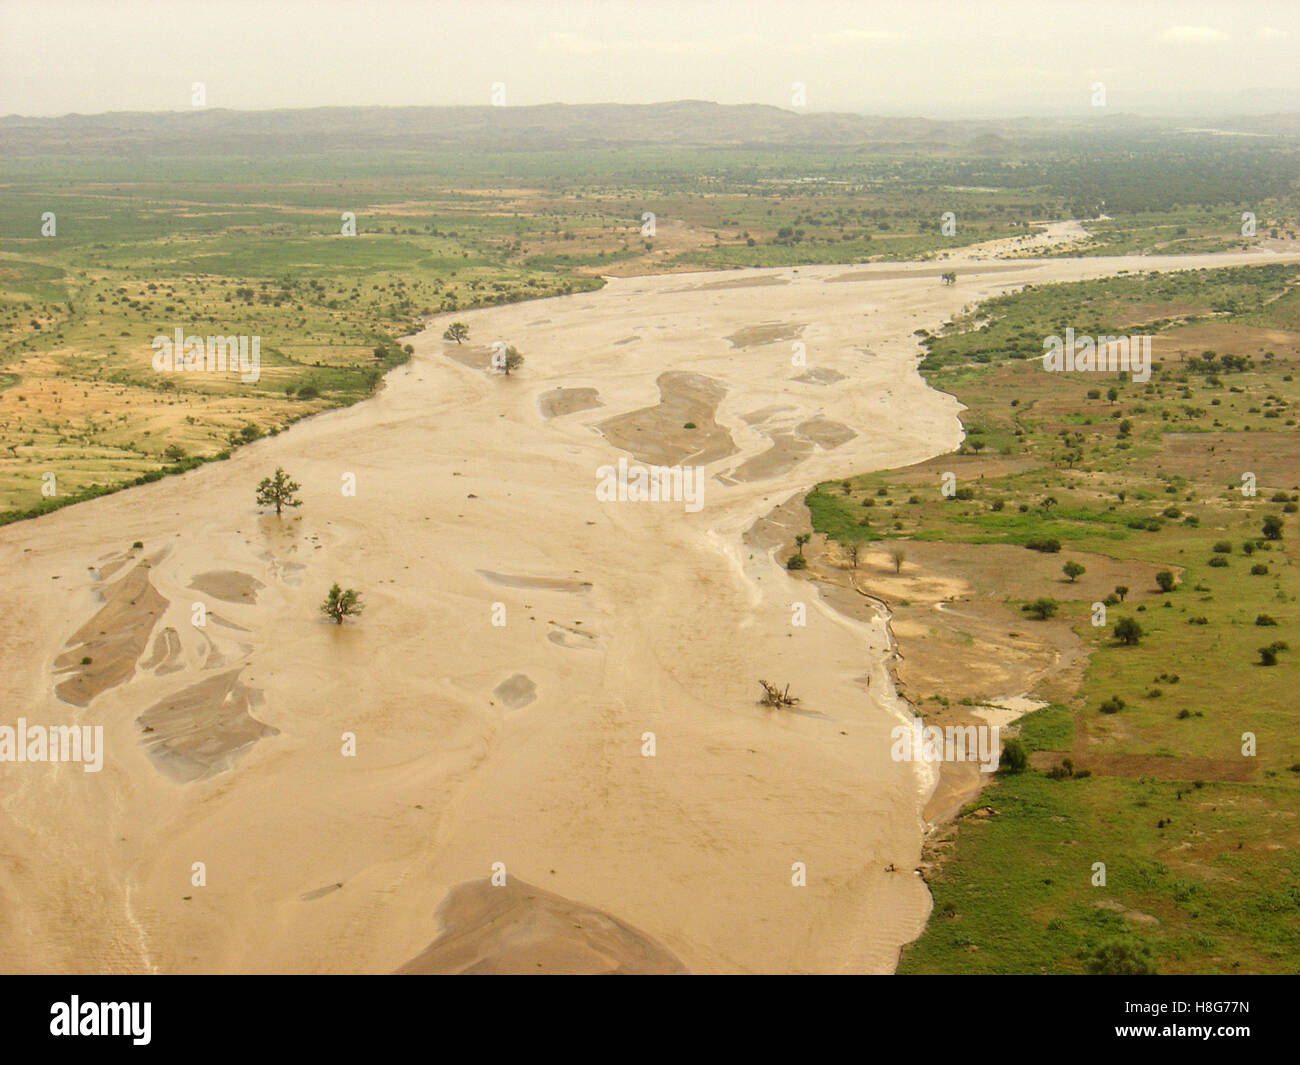 4th September 2005 A flooded wadi, a river in the desert, between Kutum and El Fasher in northern Darfur, Sudan. Stock Photo